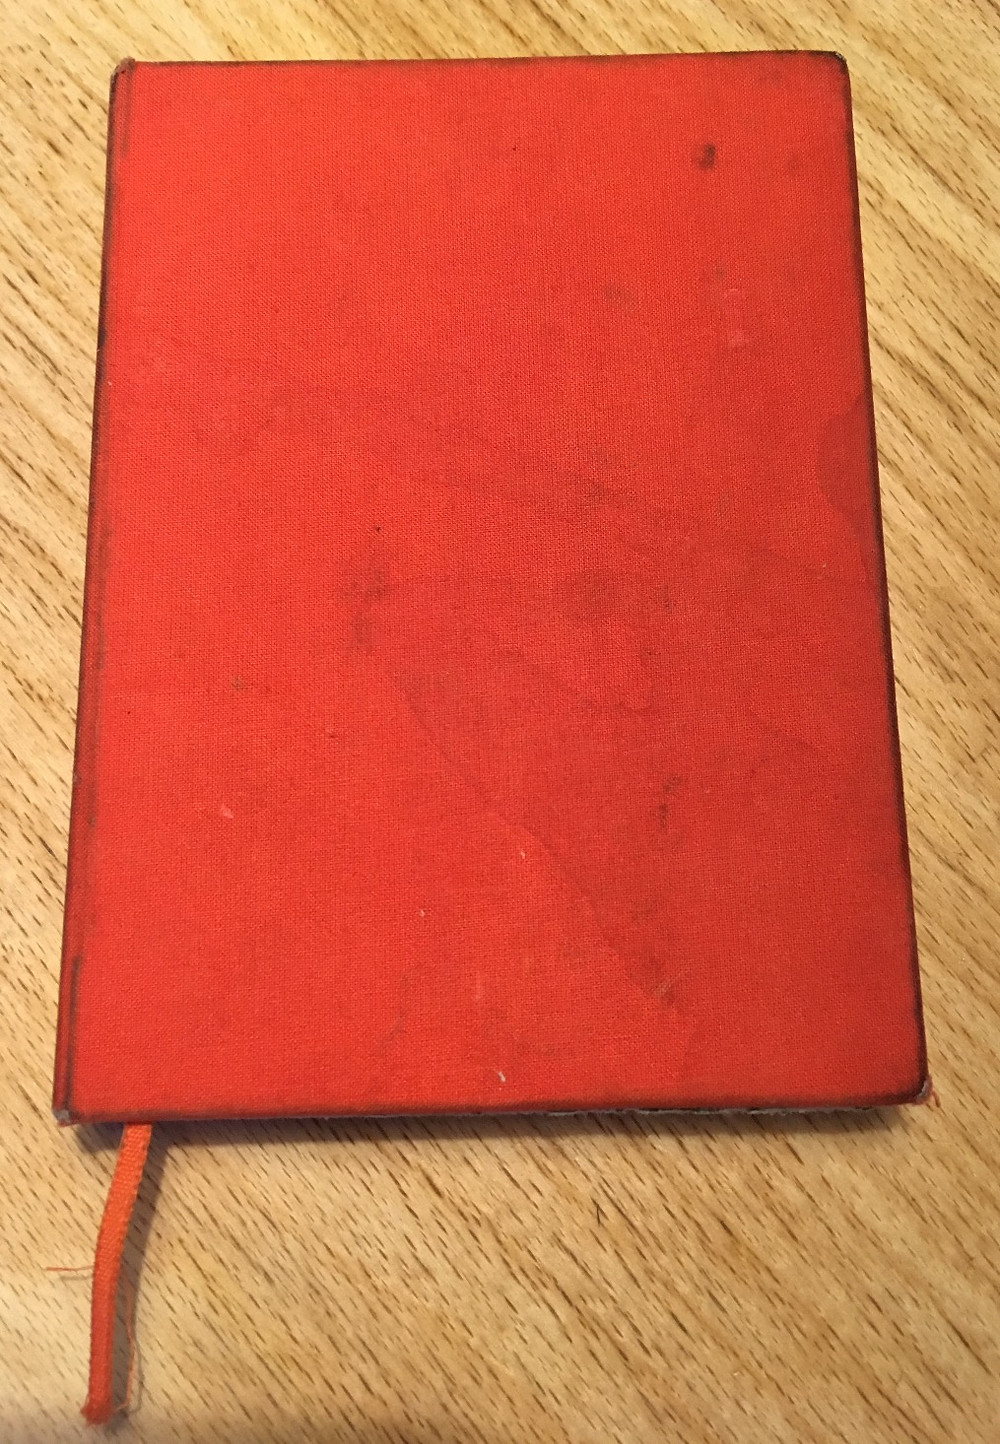 My notebook that fits in my handbag - handbound by me using wrapping paper and leftover paper in a half finished sketchbook.  Sketch drawings in The Design Museum, Copenhagen.